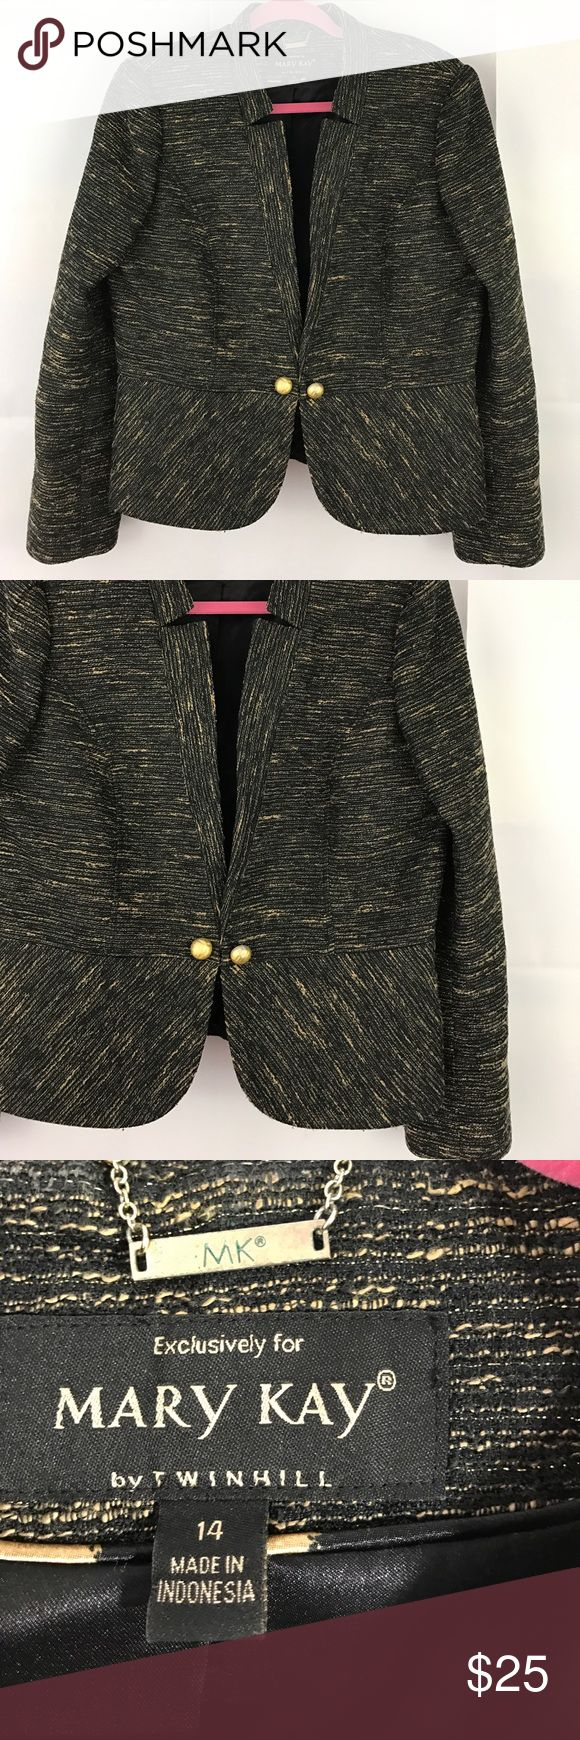 "Mary Kay by Twinhill size 14 Gold & Black Blazer Mark Kay Blazer Gold and Black glittery. Size 14, 22"" in length, 21"" across front of bust Mary Kay by Twinhill Jackets & Coats Blazers"